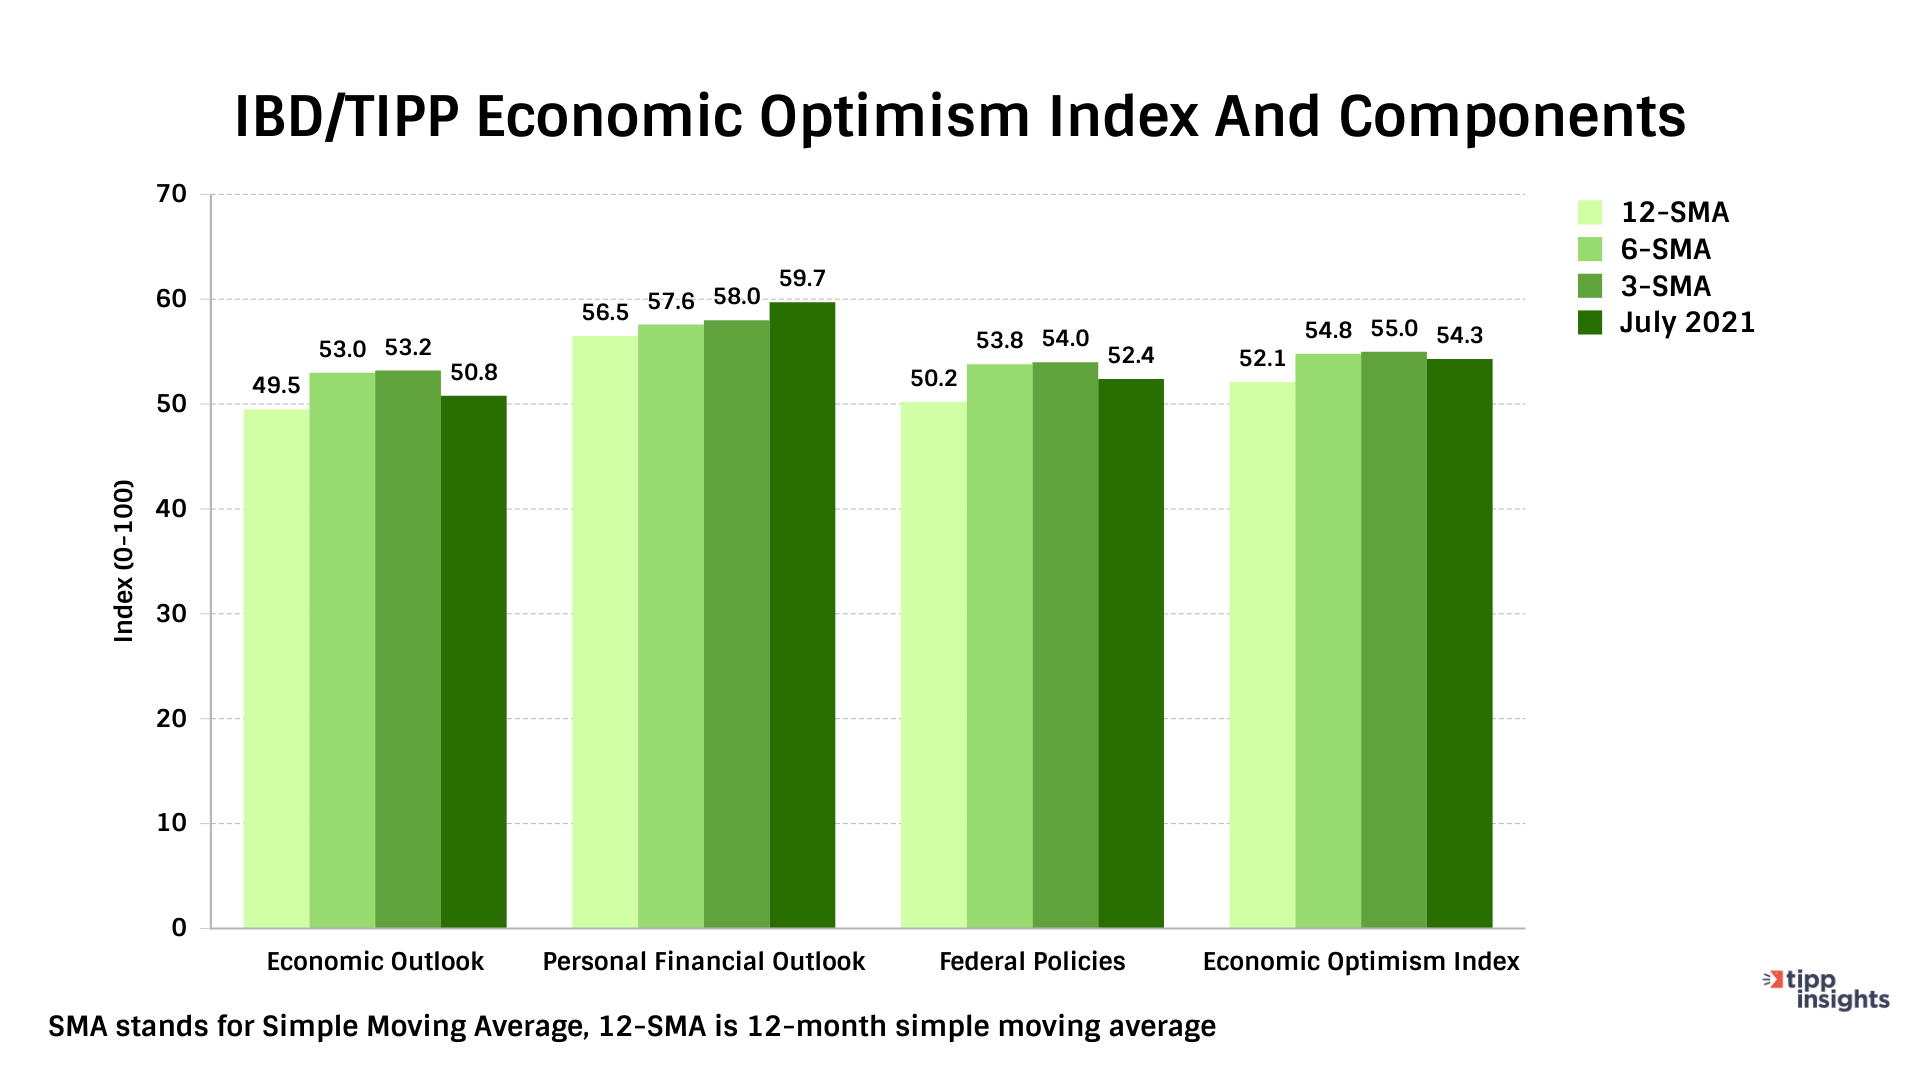 IBD/TIPP Economic Optimism Index And Components for july 2021